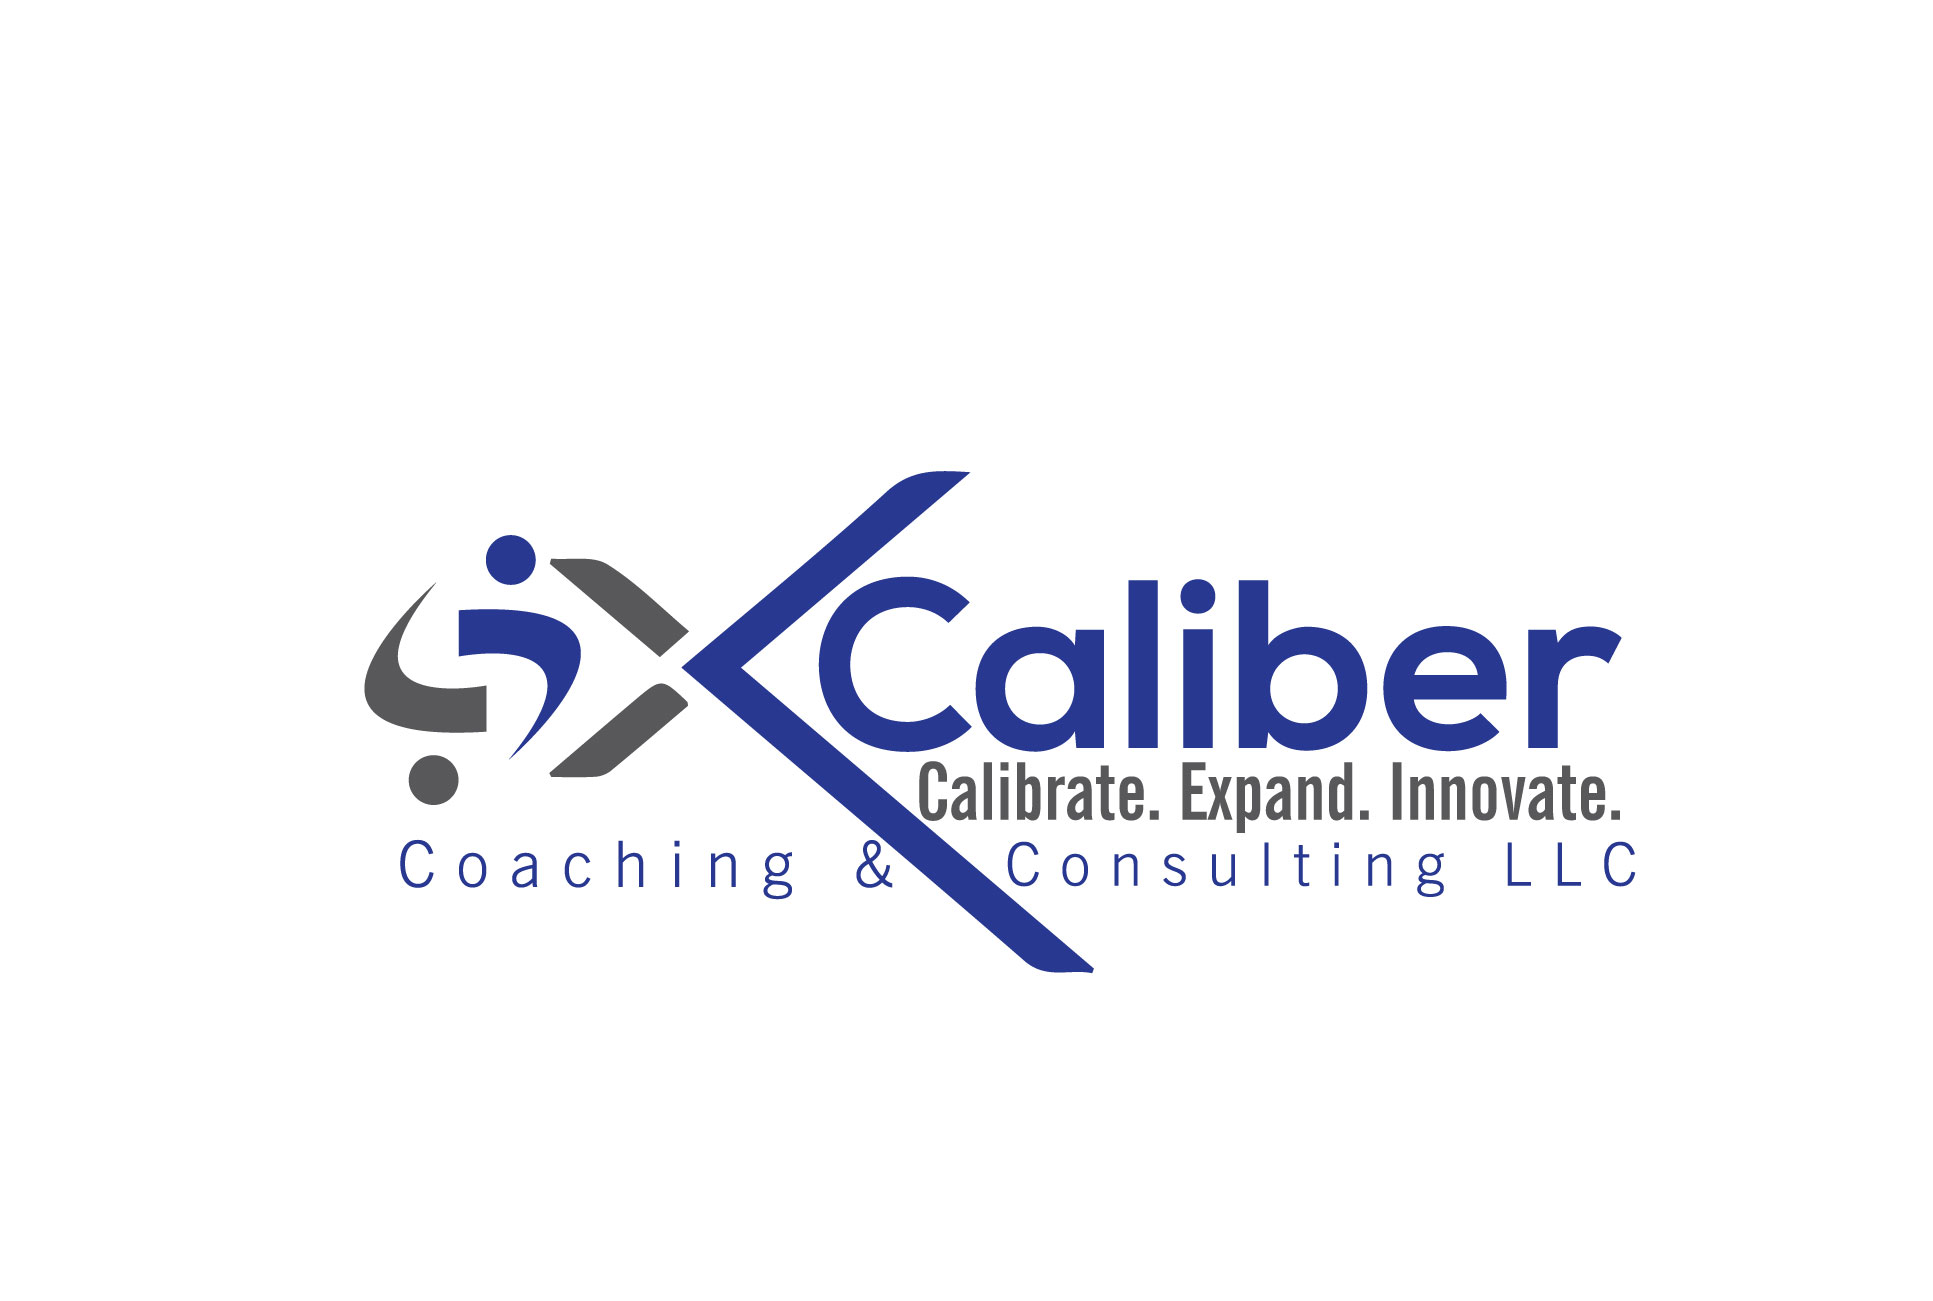 Xcaliber coaching consulting resume writing linkedin profiles reheart Images